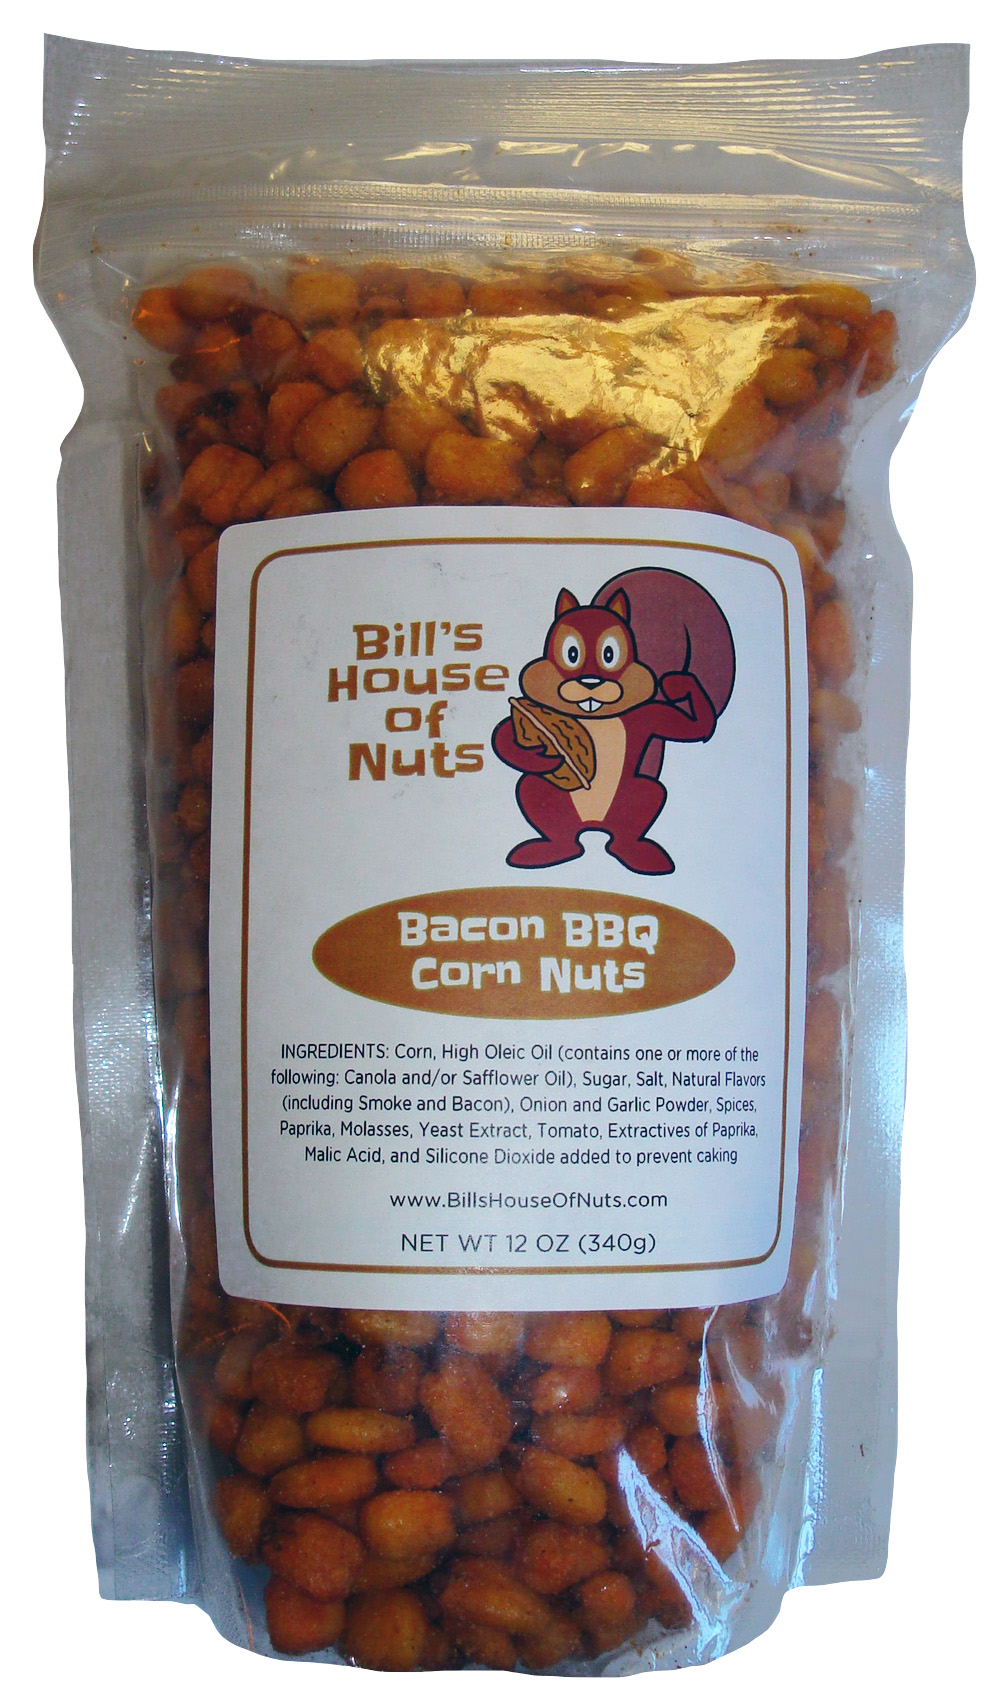 Bacon BBQ Corn Nuts Snacks - Available in 8oz 12oz 28oz bags